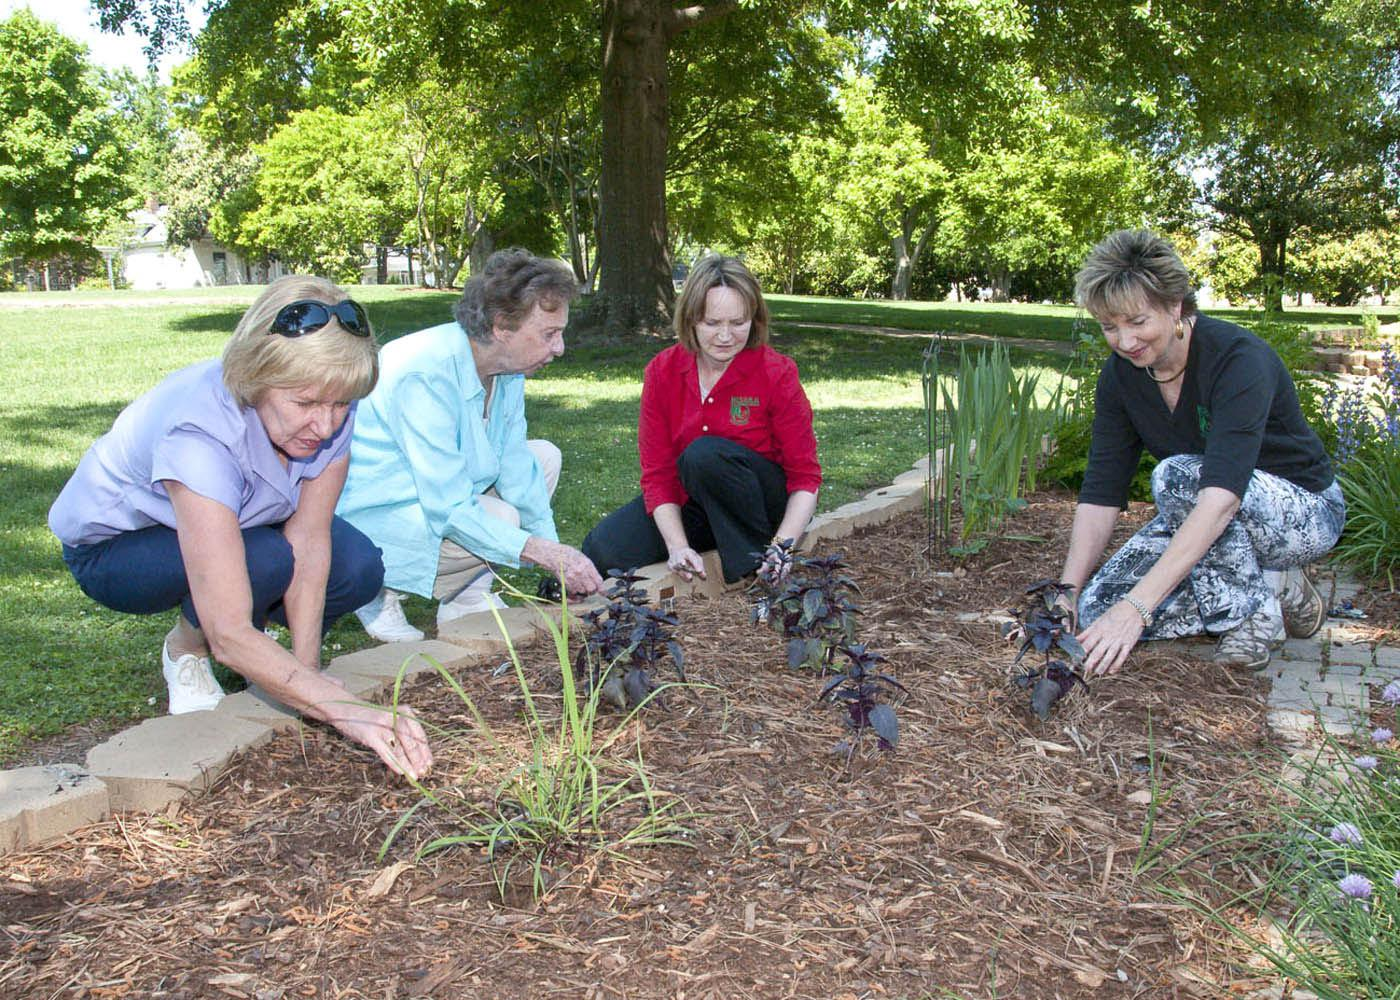 For some, gardening is a passion that leads to community service, but for others, gardening is just hard work. Lowndes County Master Gardeners, from left, Jean Wilson, Mary Faglie, Jennifer Duzan and Nell Thomas examine some of the herbs growing in the garden they renovated for the Culinary Institute at Mississippi University for Women. (Photo by MSU Ag Communications/Scott Corey)